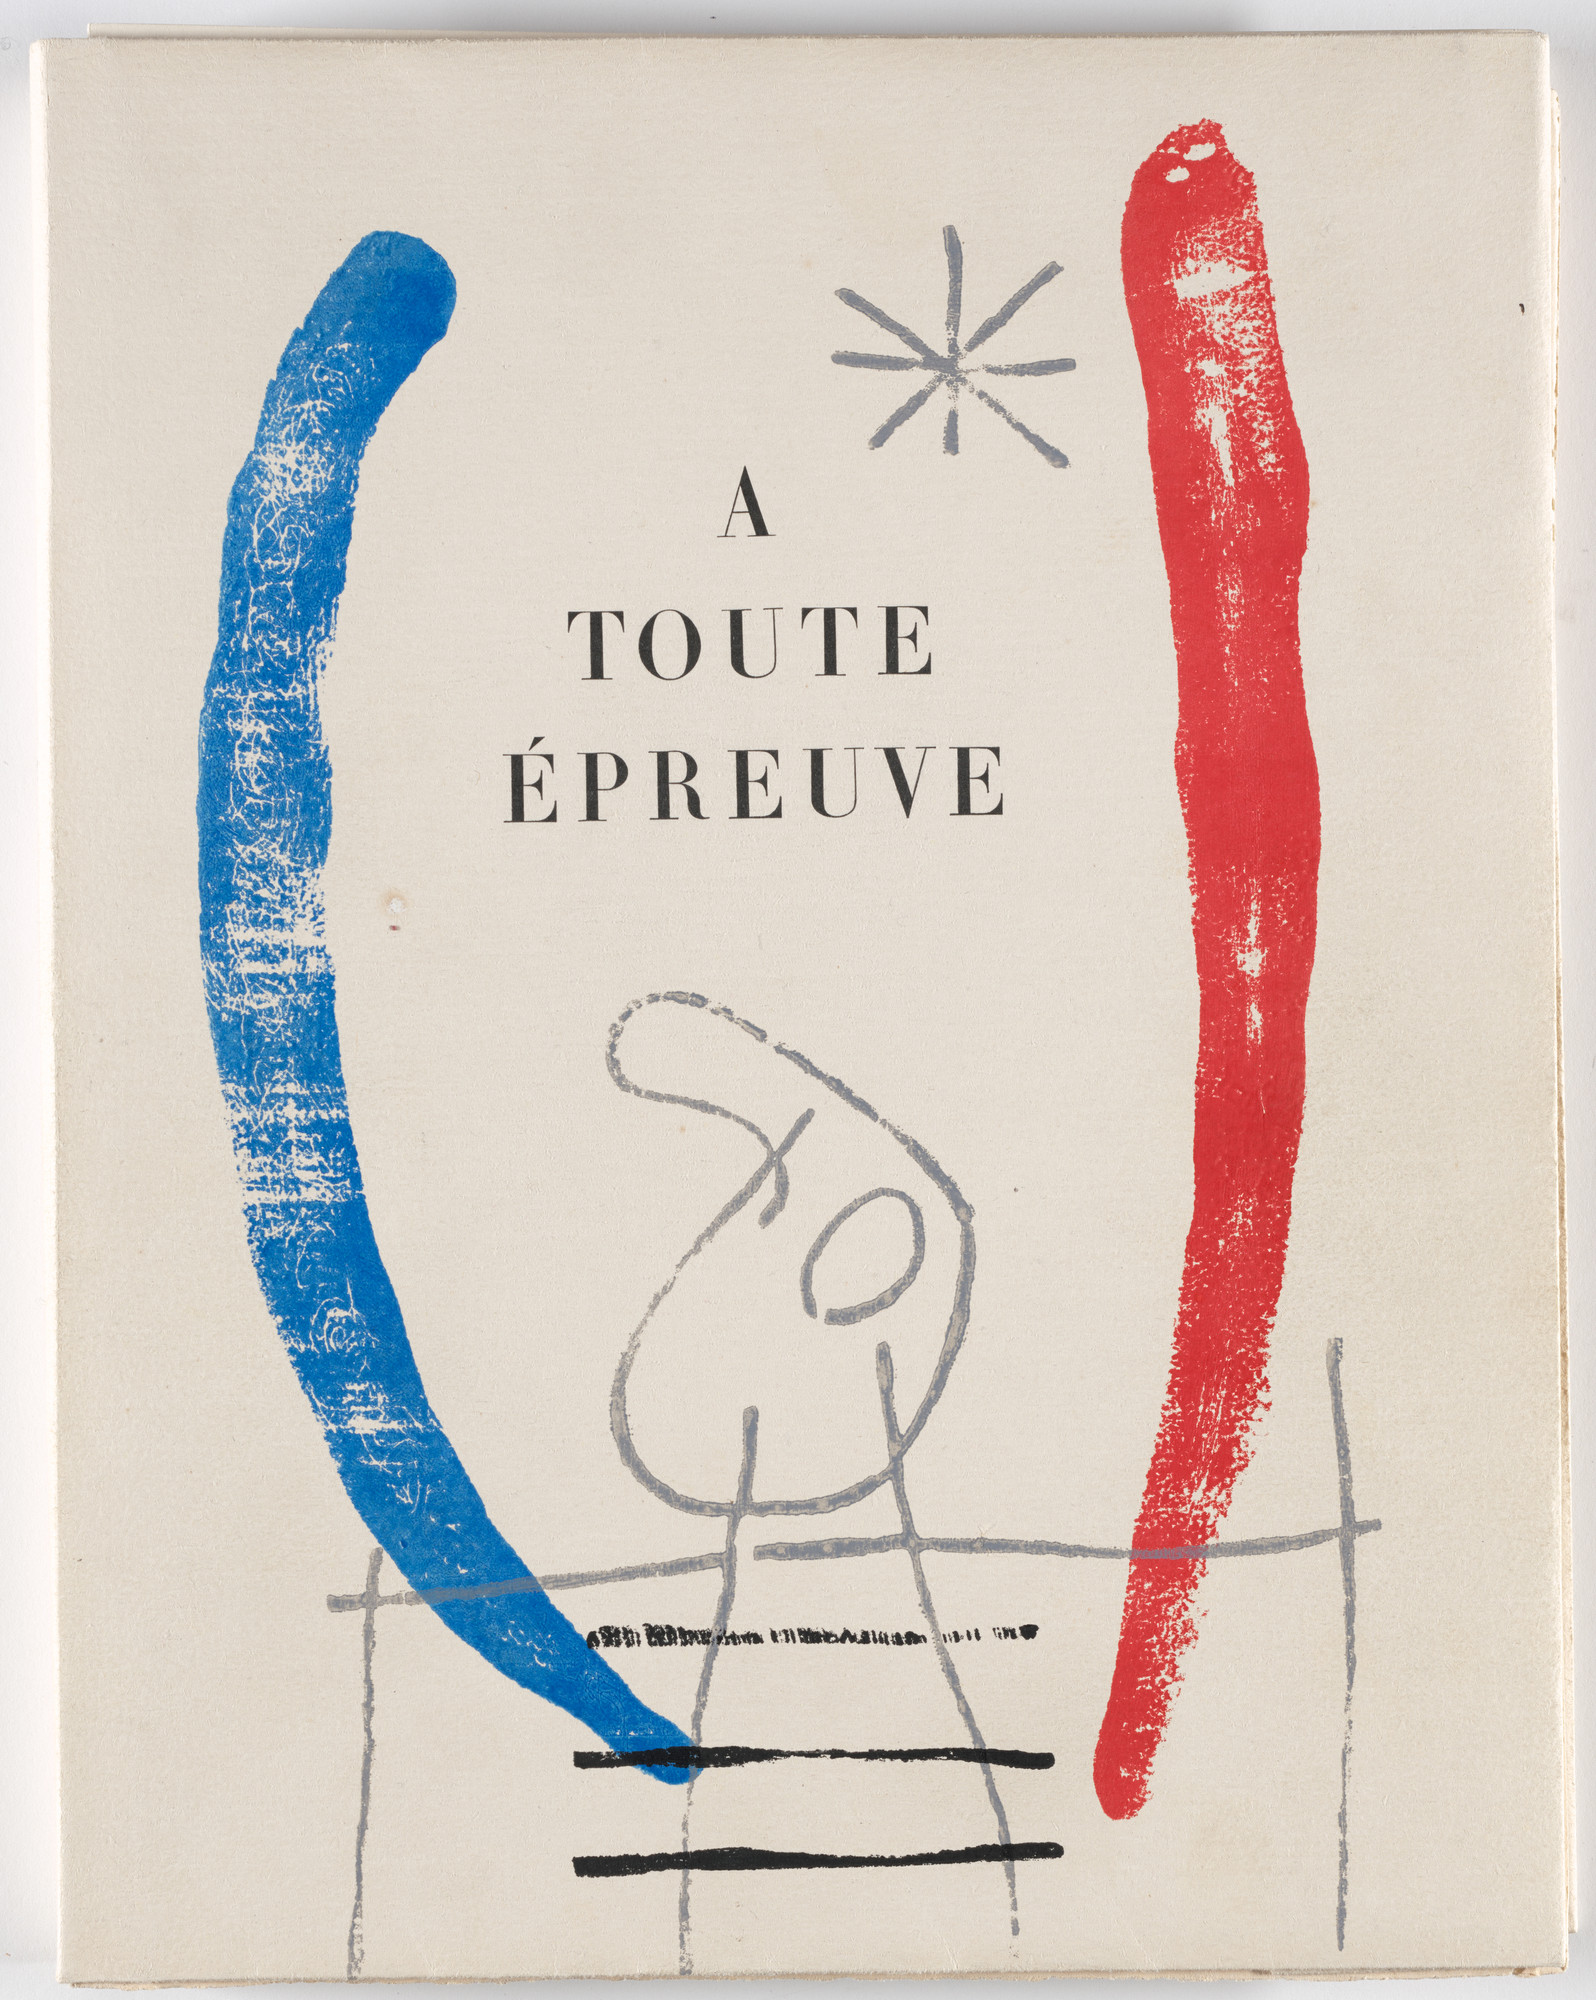 Joan Miró. Wrapper front from À toute épreuve (Proof Against All). 1947–58, published 1958